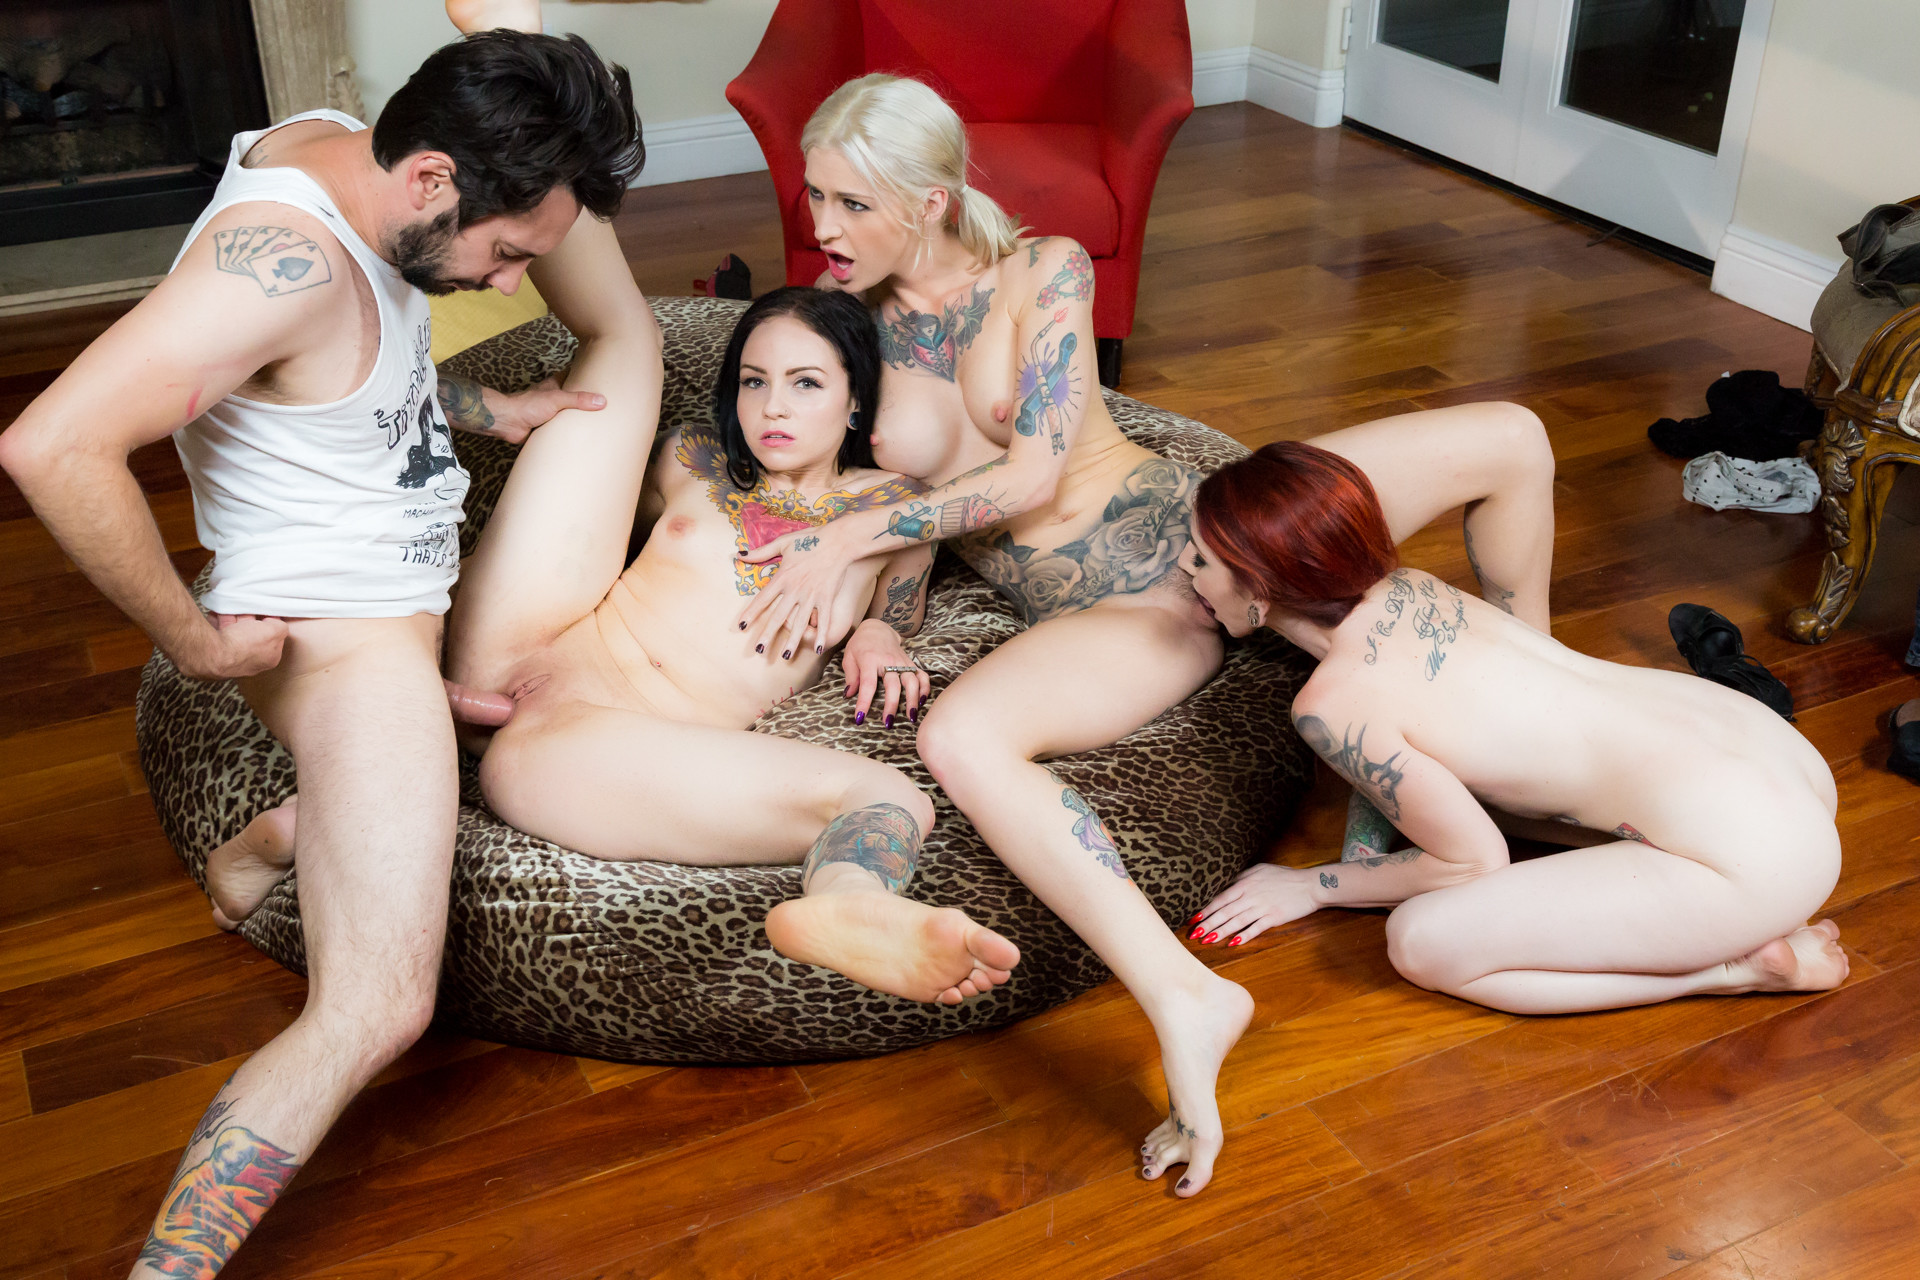 All american orgy can